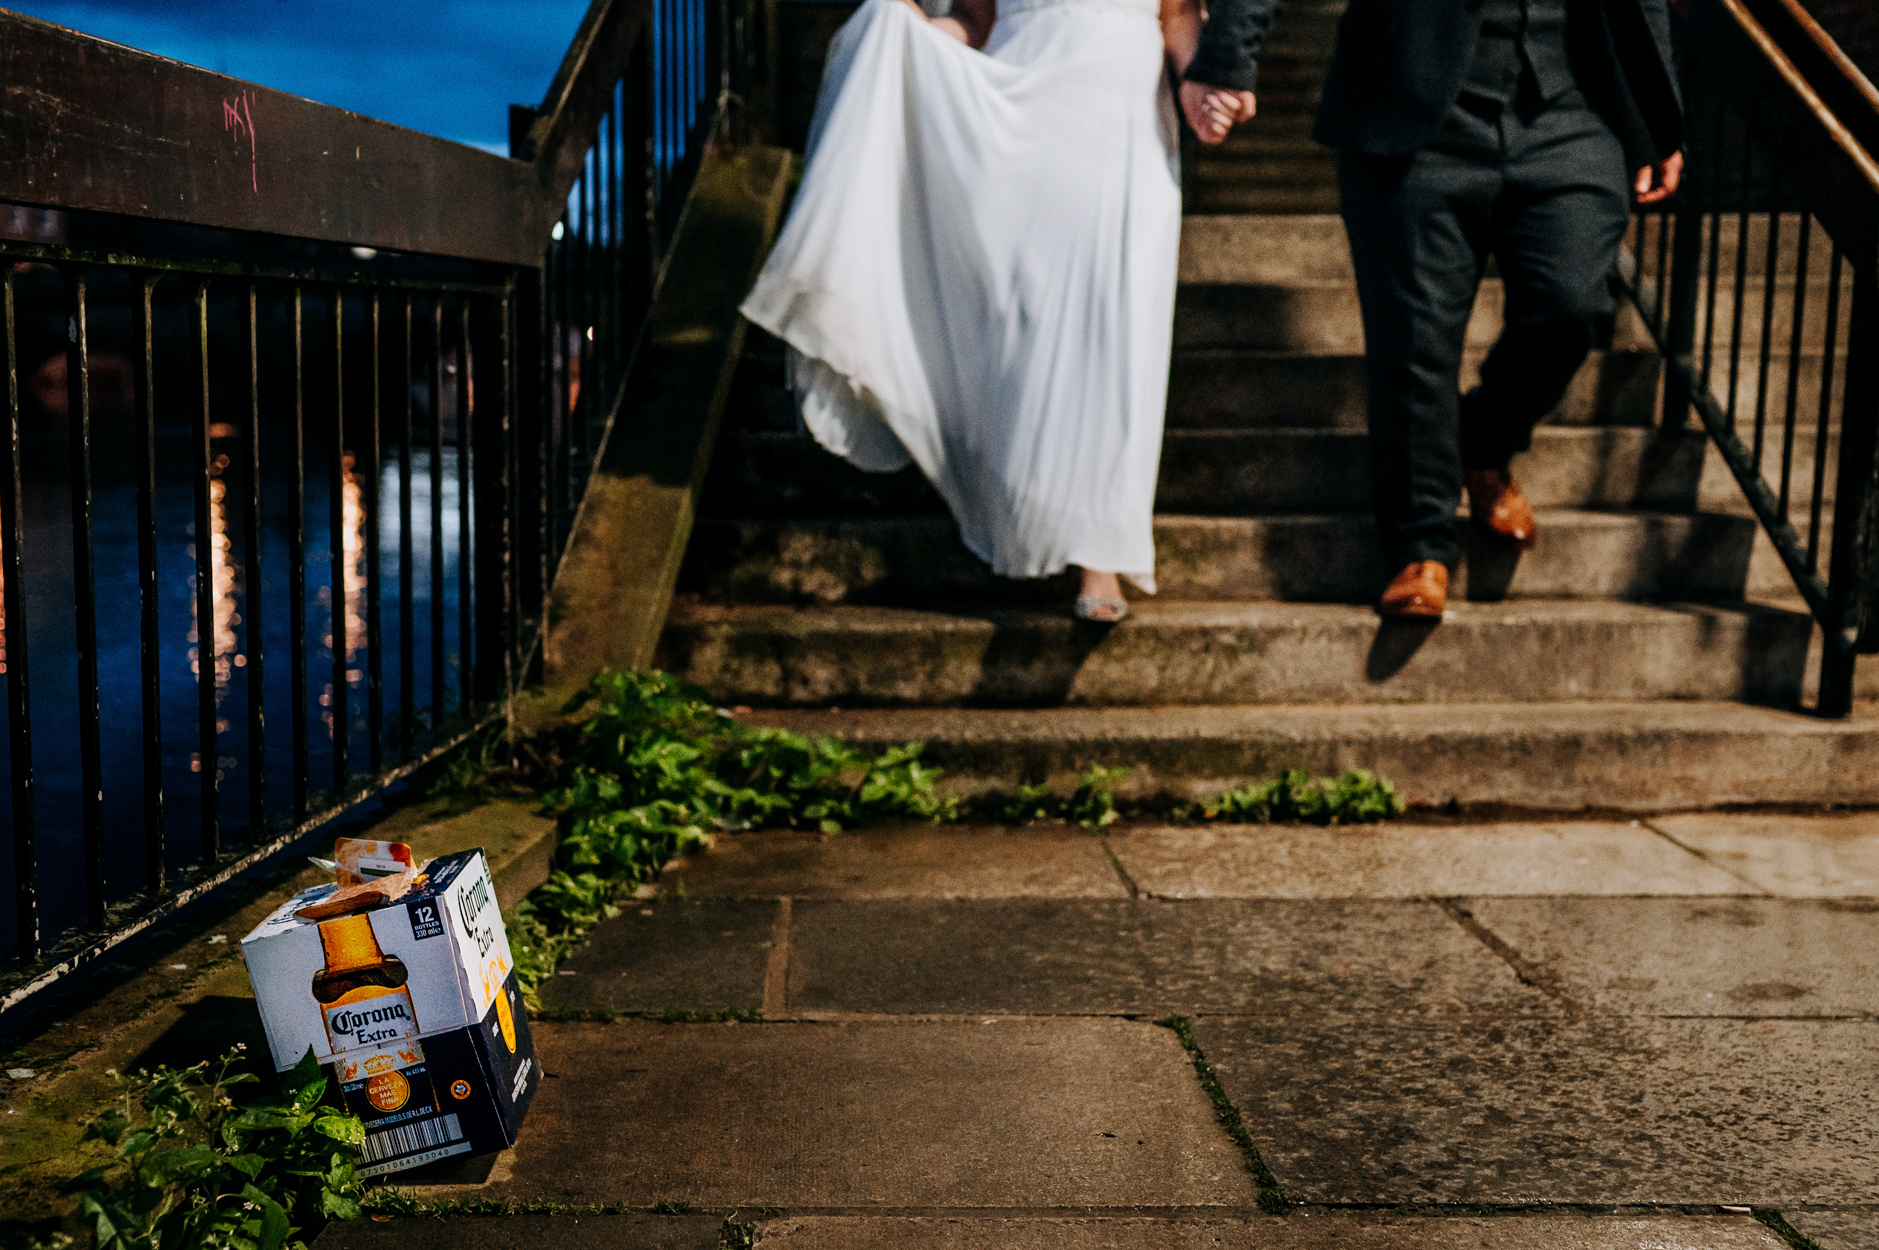 Wedding Photographers of York, UK | The couple leave their reception and walk past a dumped, empty box of Corona beer